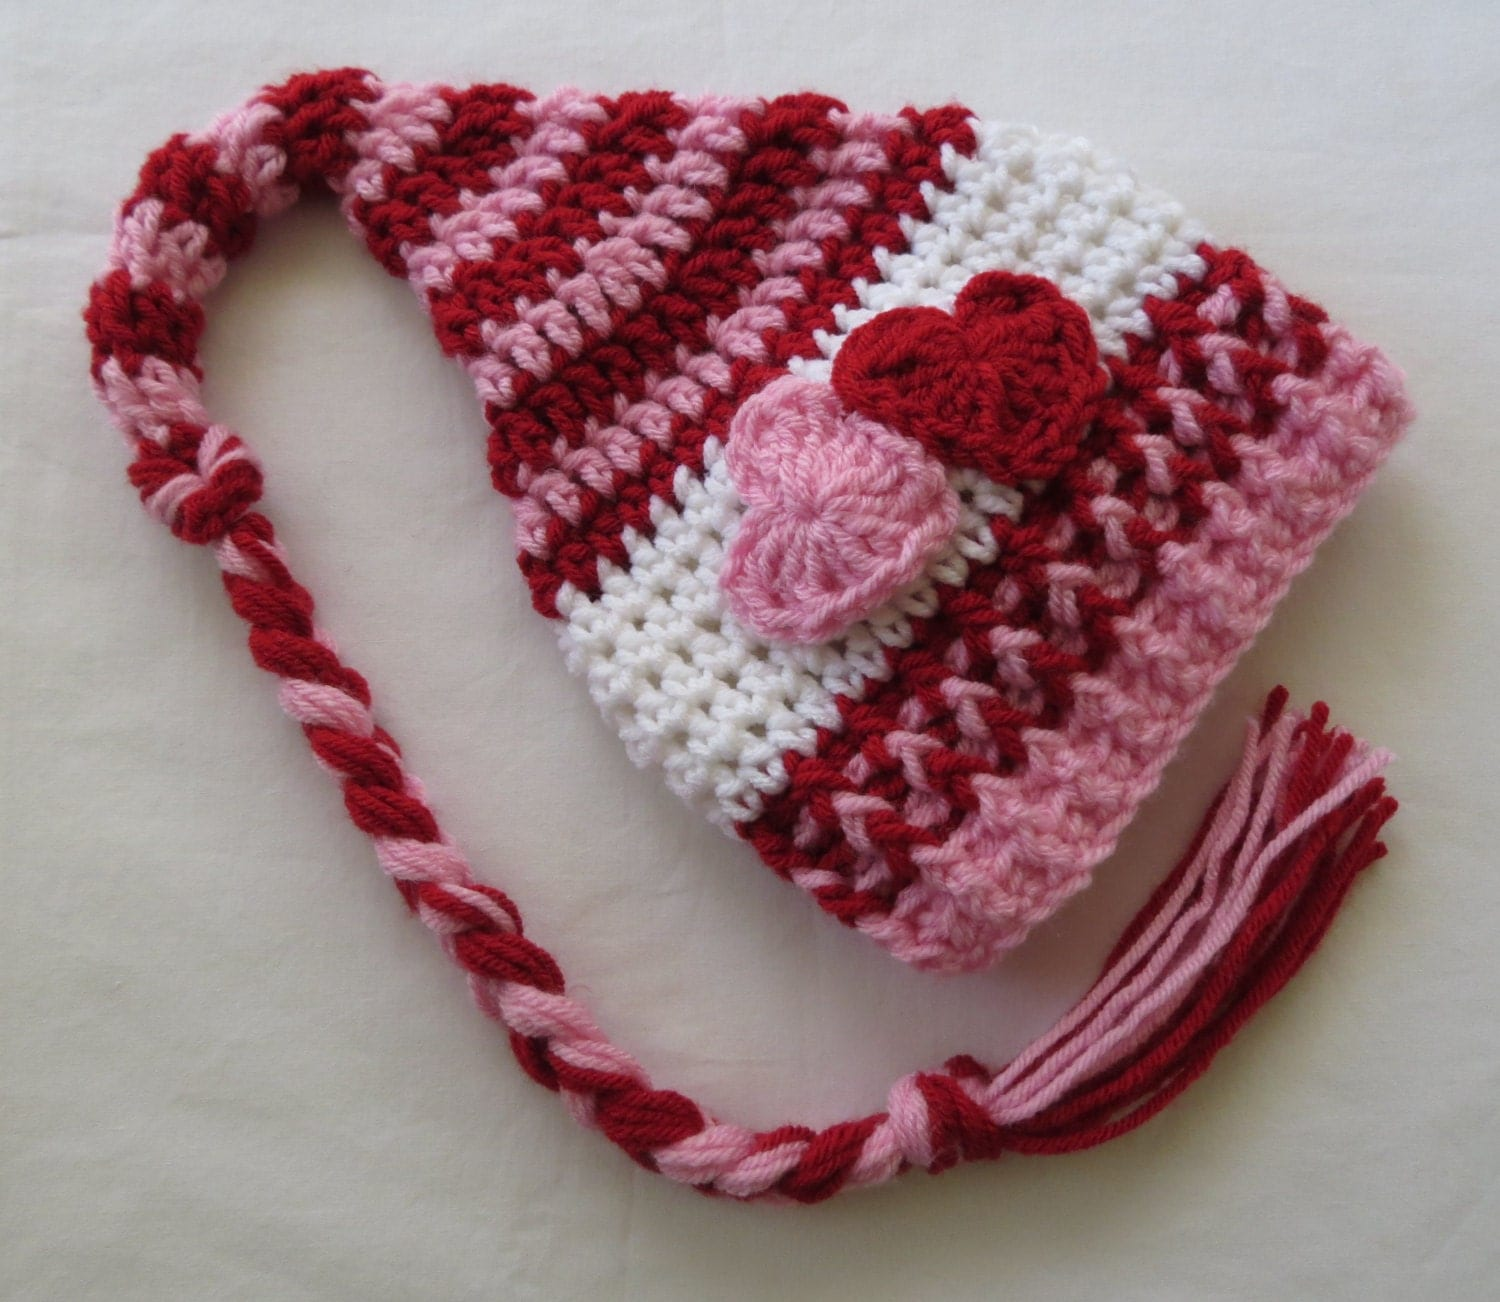 Crochet VALENTINES DAY Stocking HAT by kimcrochetcreations